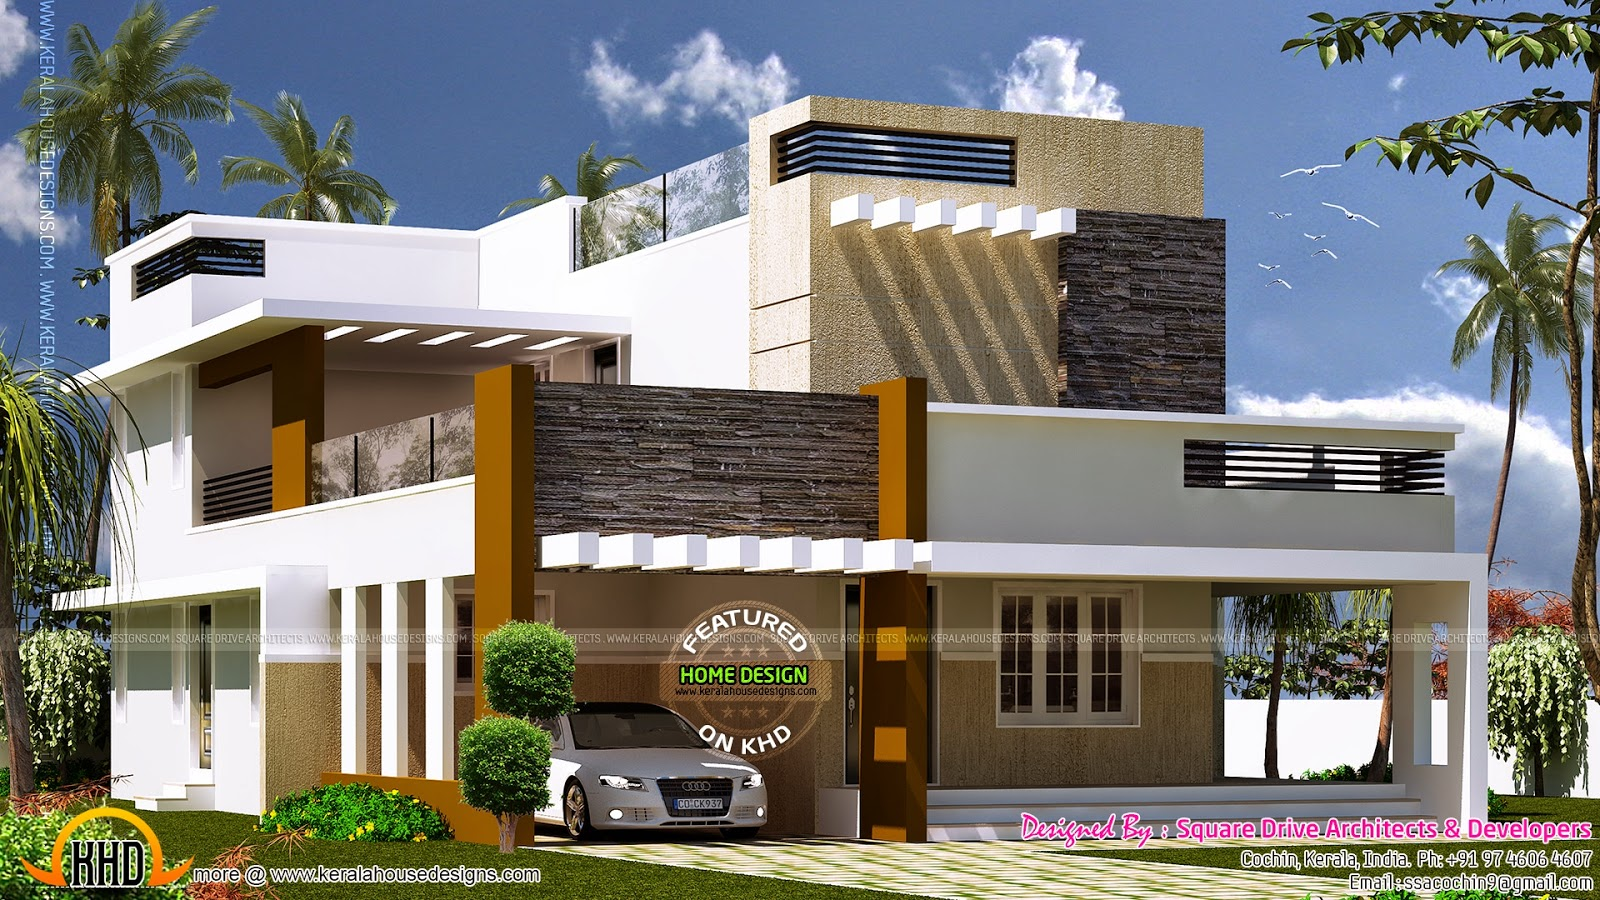 Exterior design of contemporary villa kerala home design for Exterior design modern house